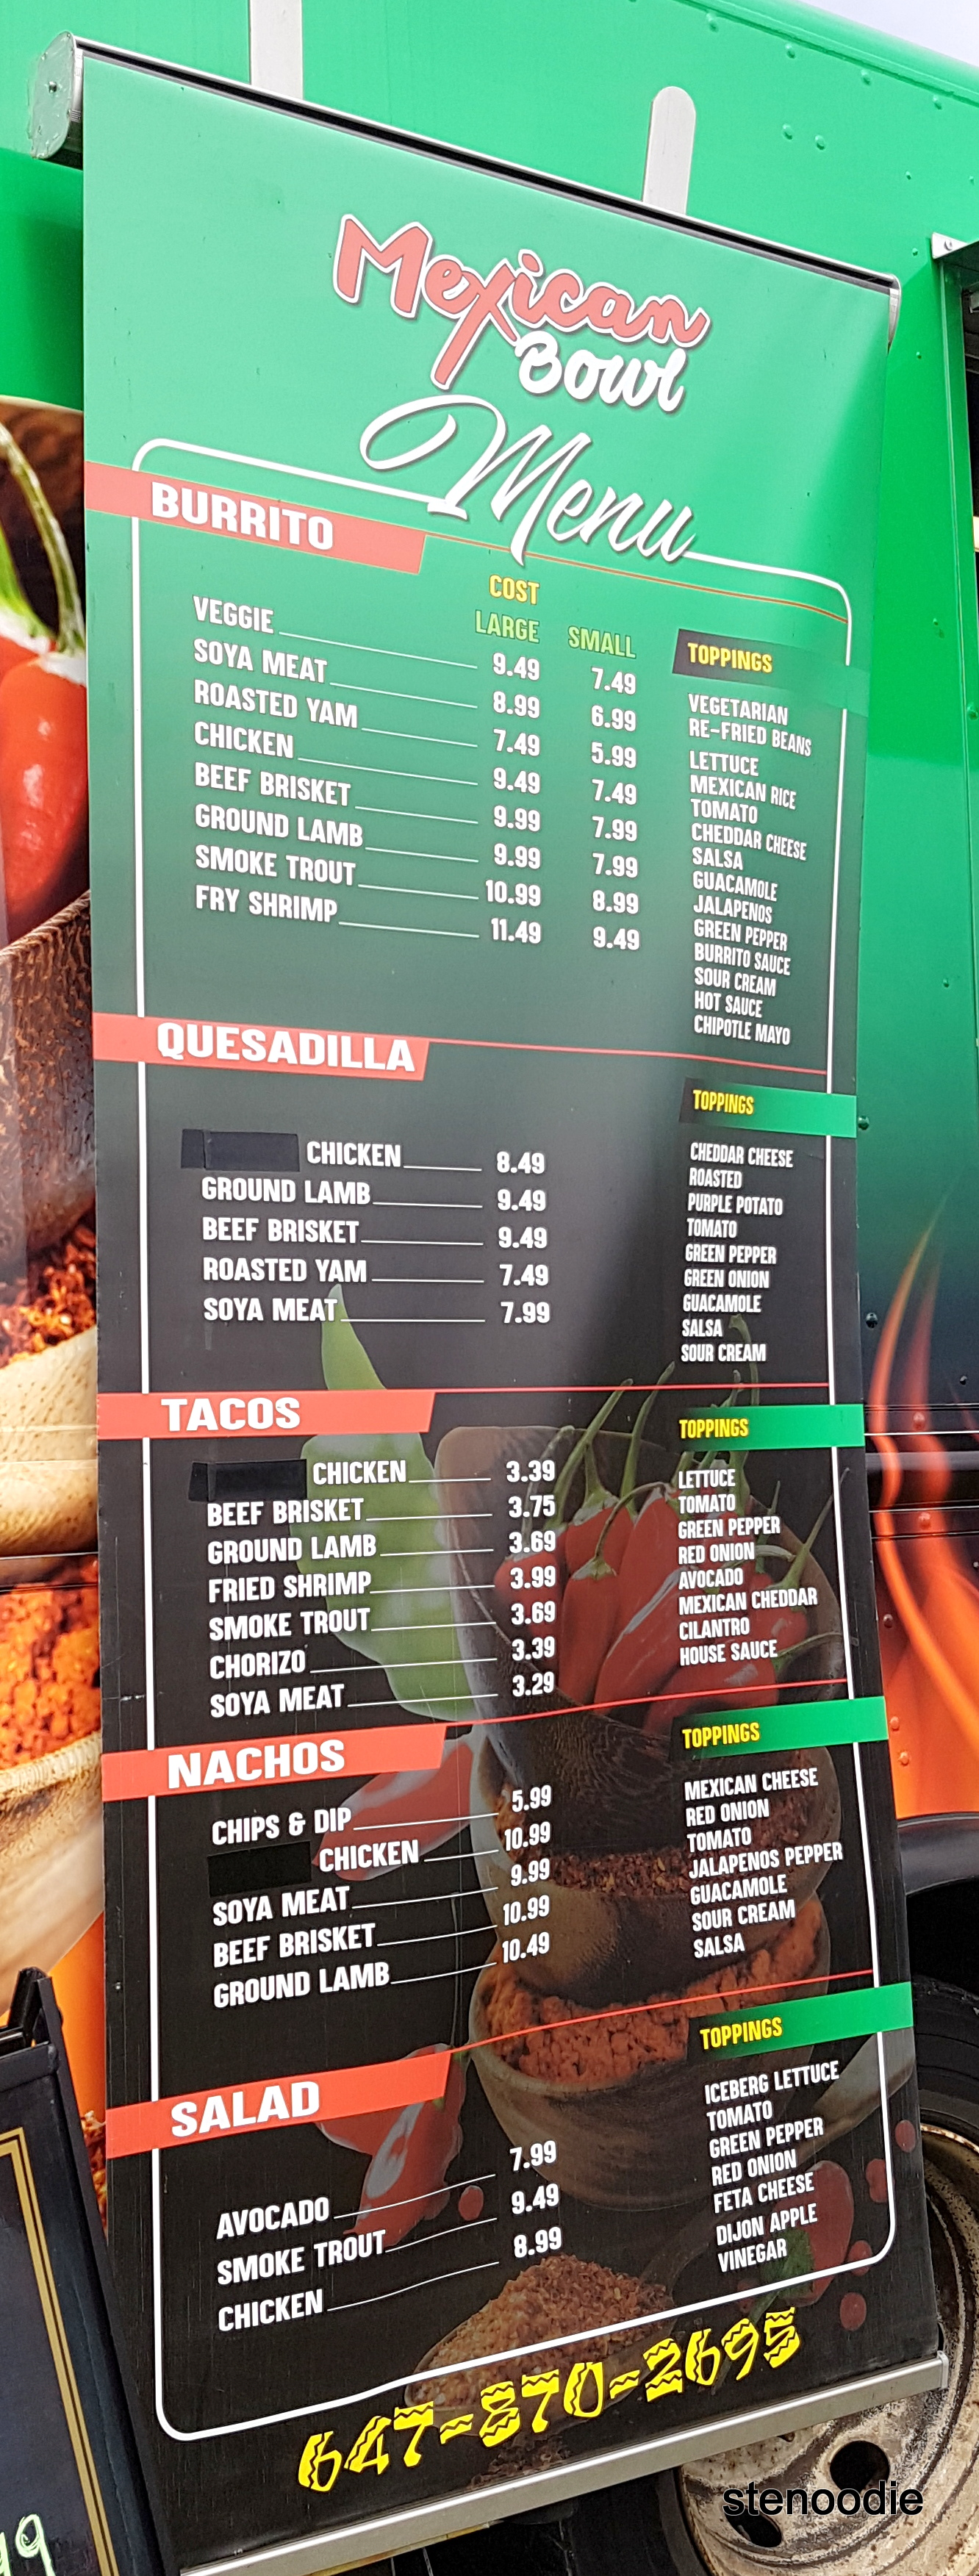 Mexican Bowl food truck menu and prices